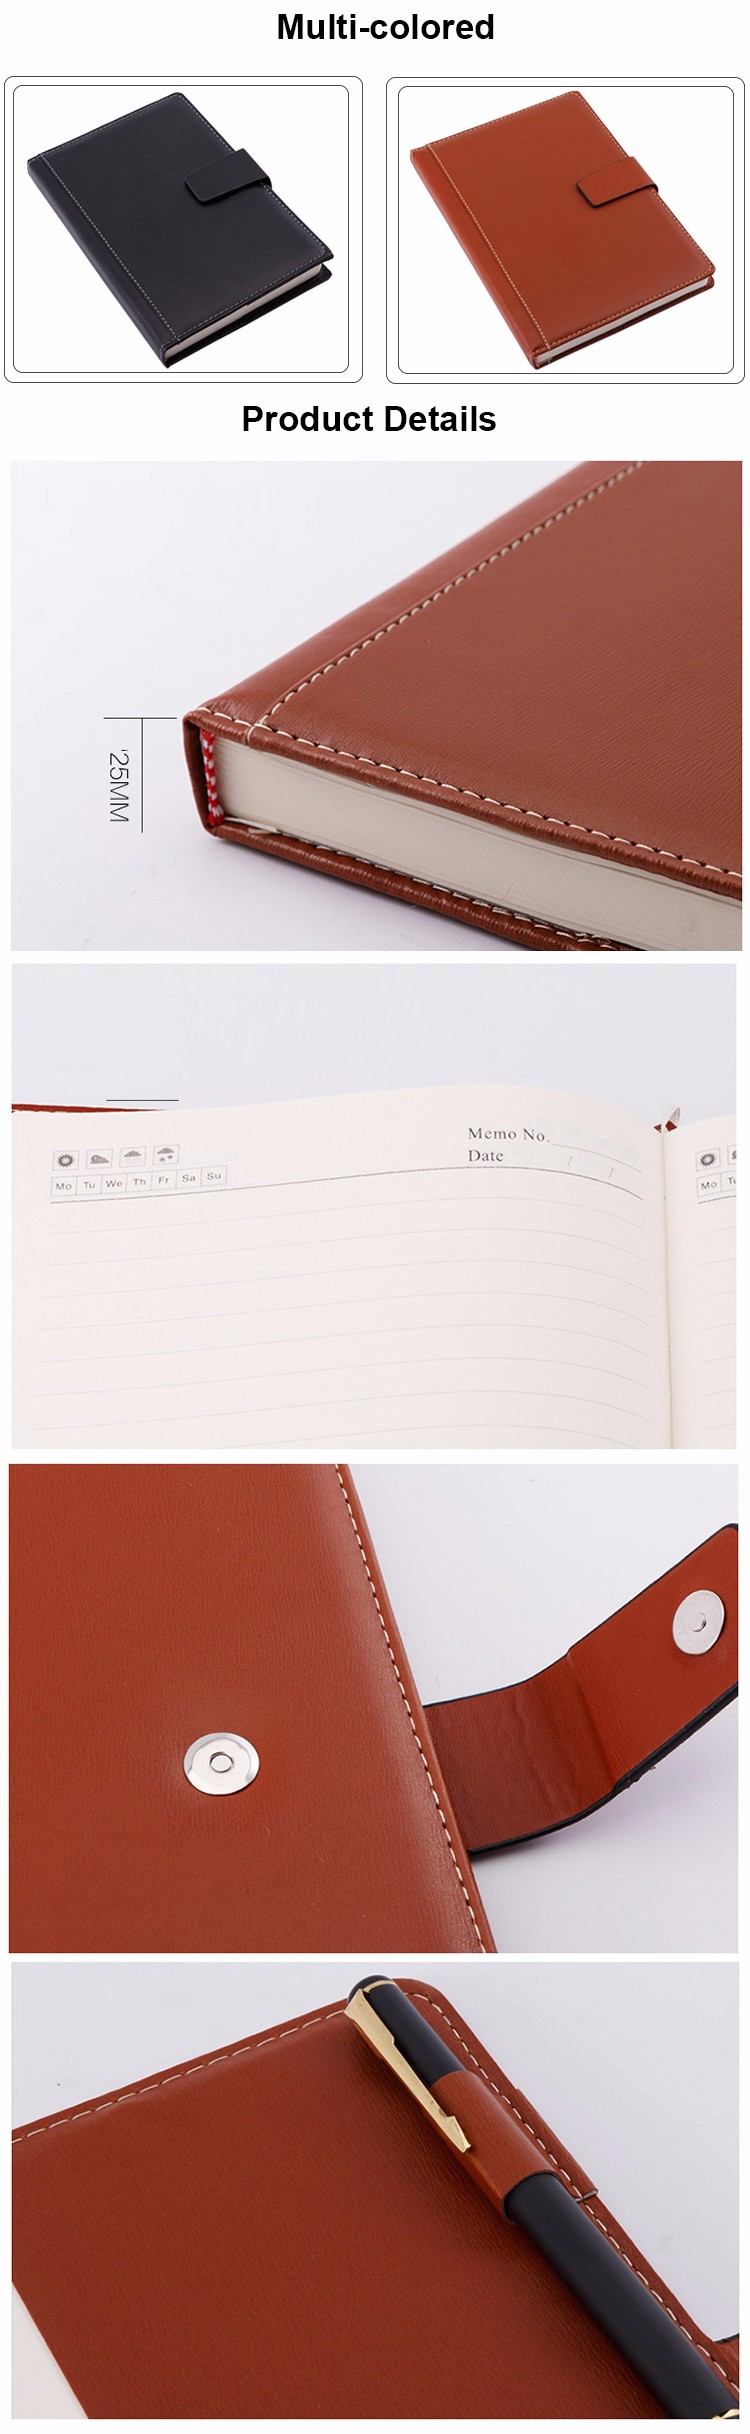 Promotional embossed LOGO planner agenda offset printing  journal leather custom printed notebook